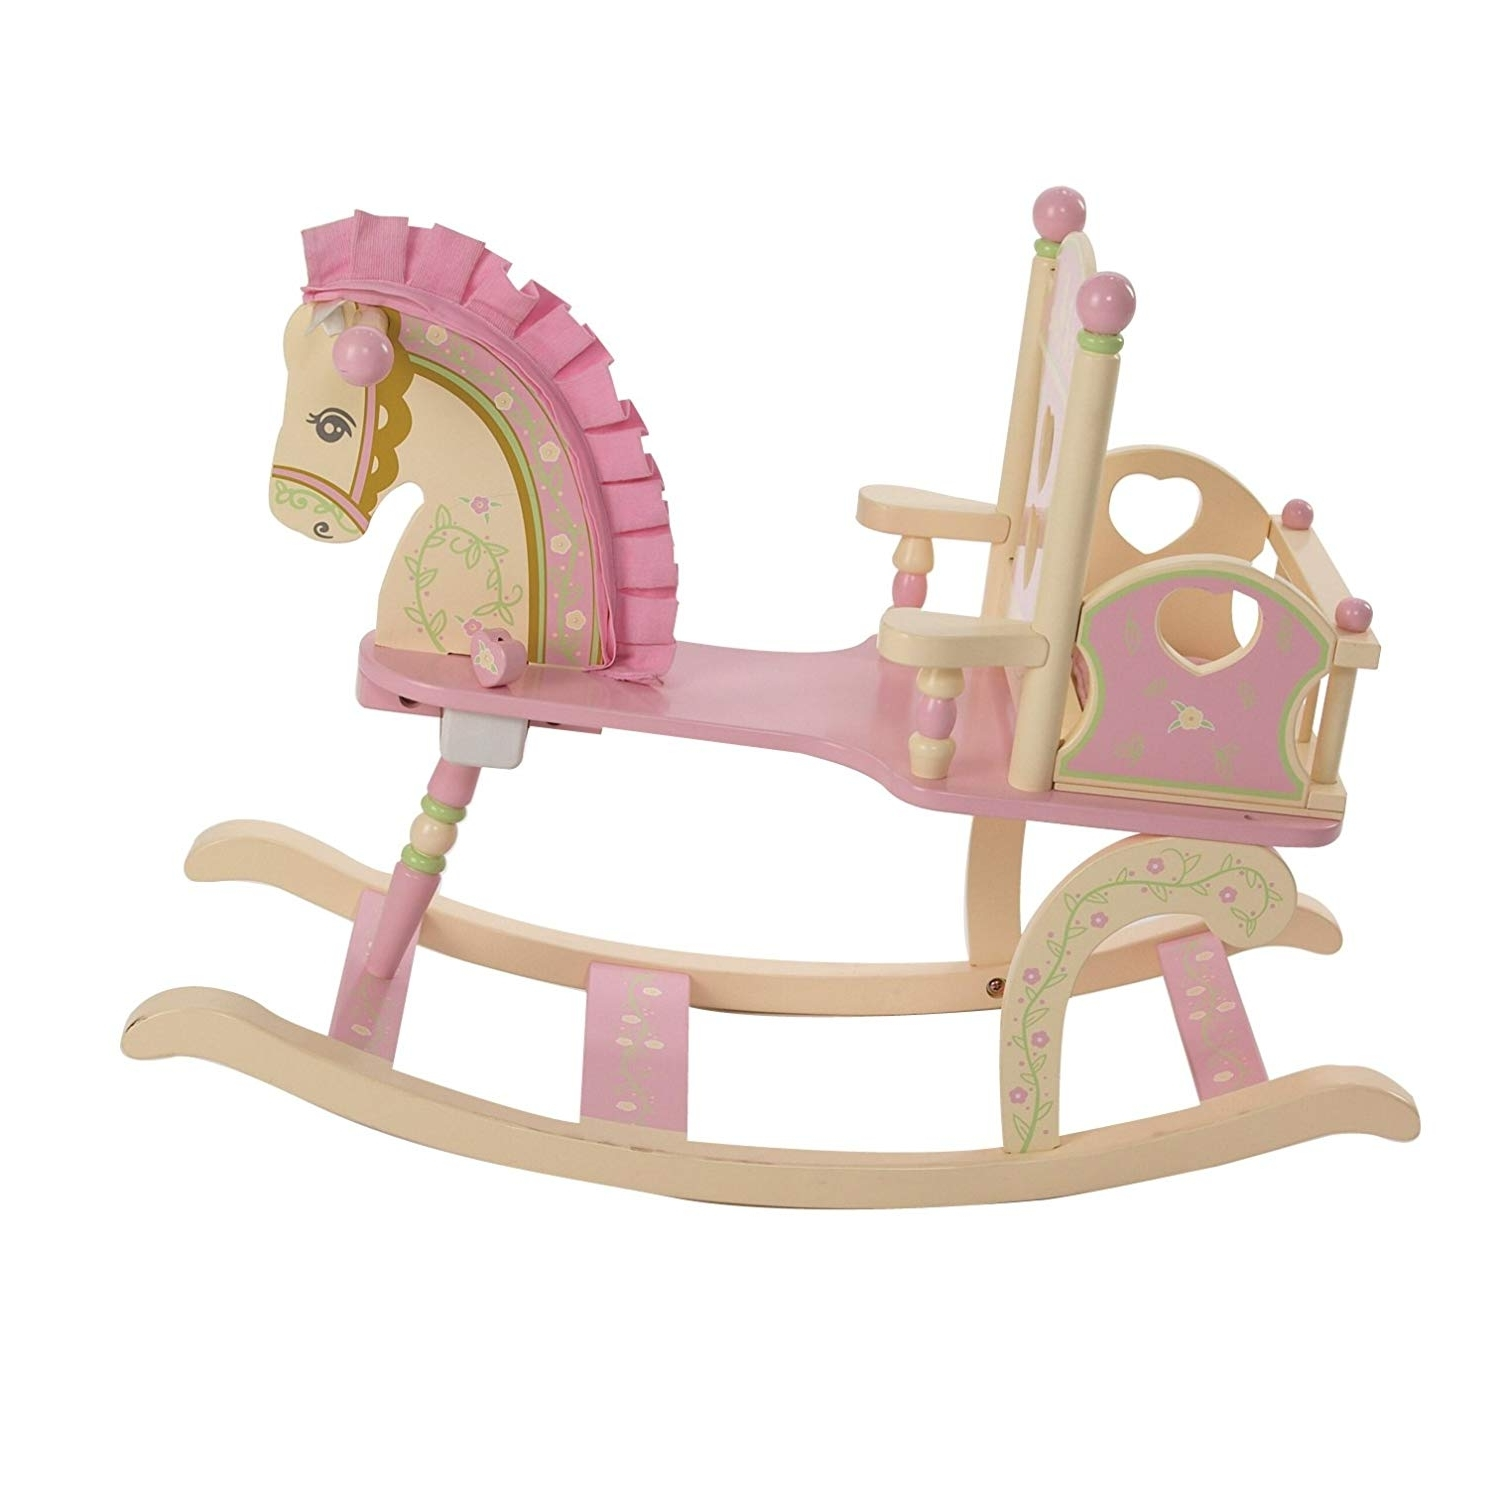 Amazon Rocking Chairs In Most Current Amazon: Wildkin Rock A My Baby Rocking Horse: Toys & Games (View 7 of 15)